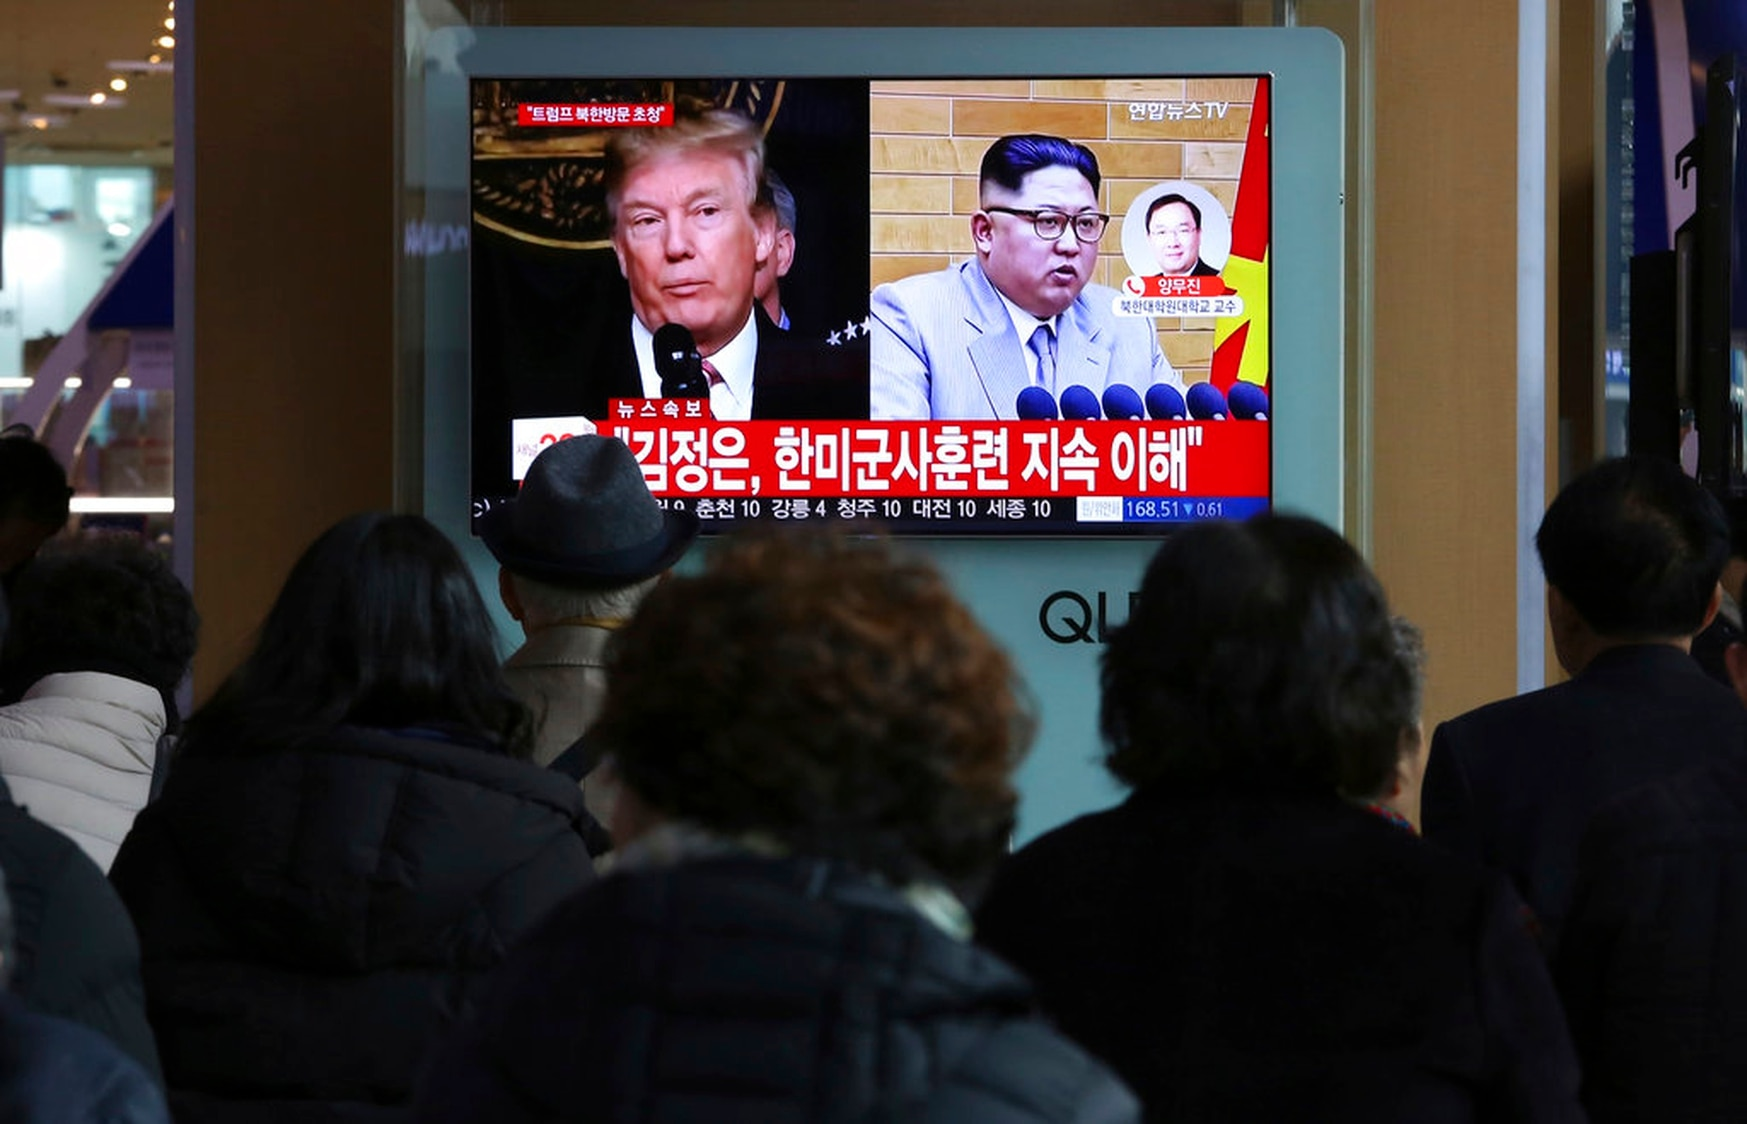 To some, frustration over cyber and intelligence options in North Korea were an inflection point in U.S. policy. (Ahn Young-joon/AP)